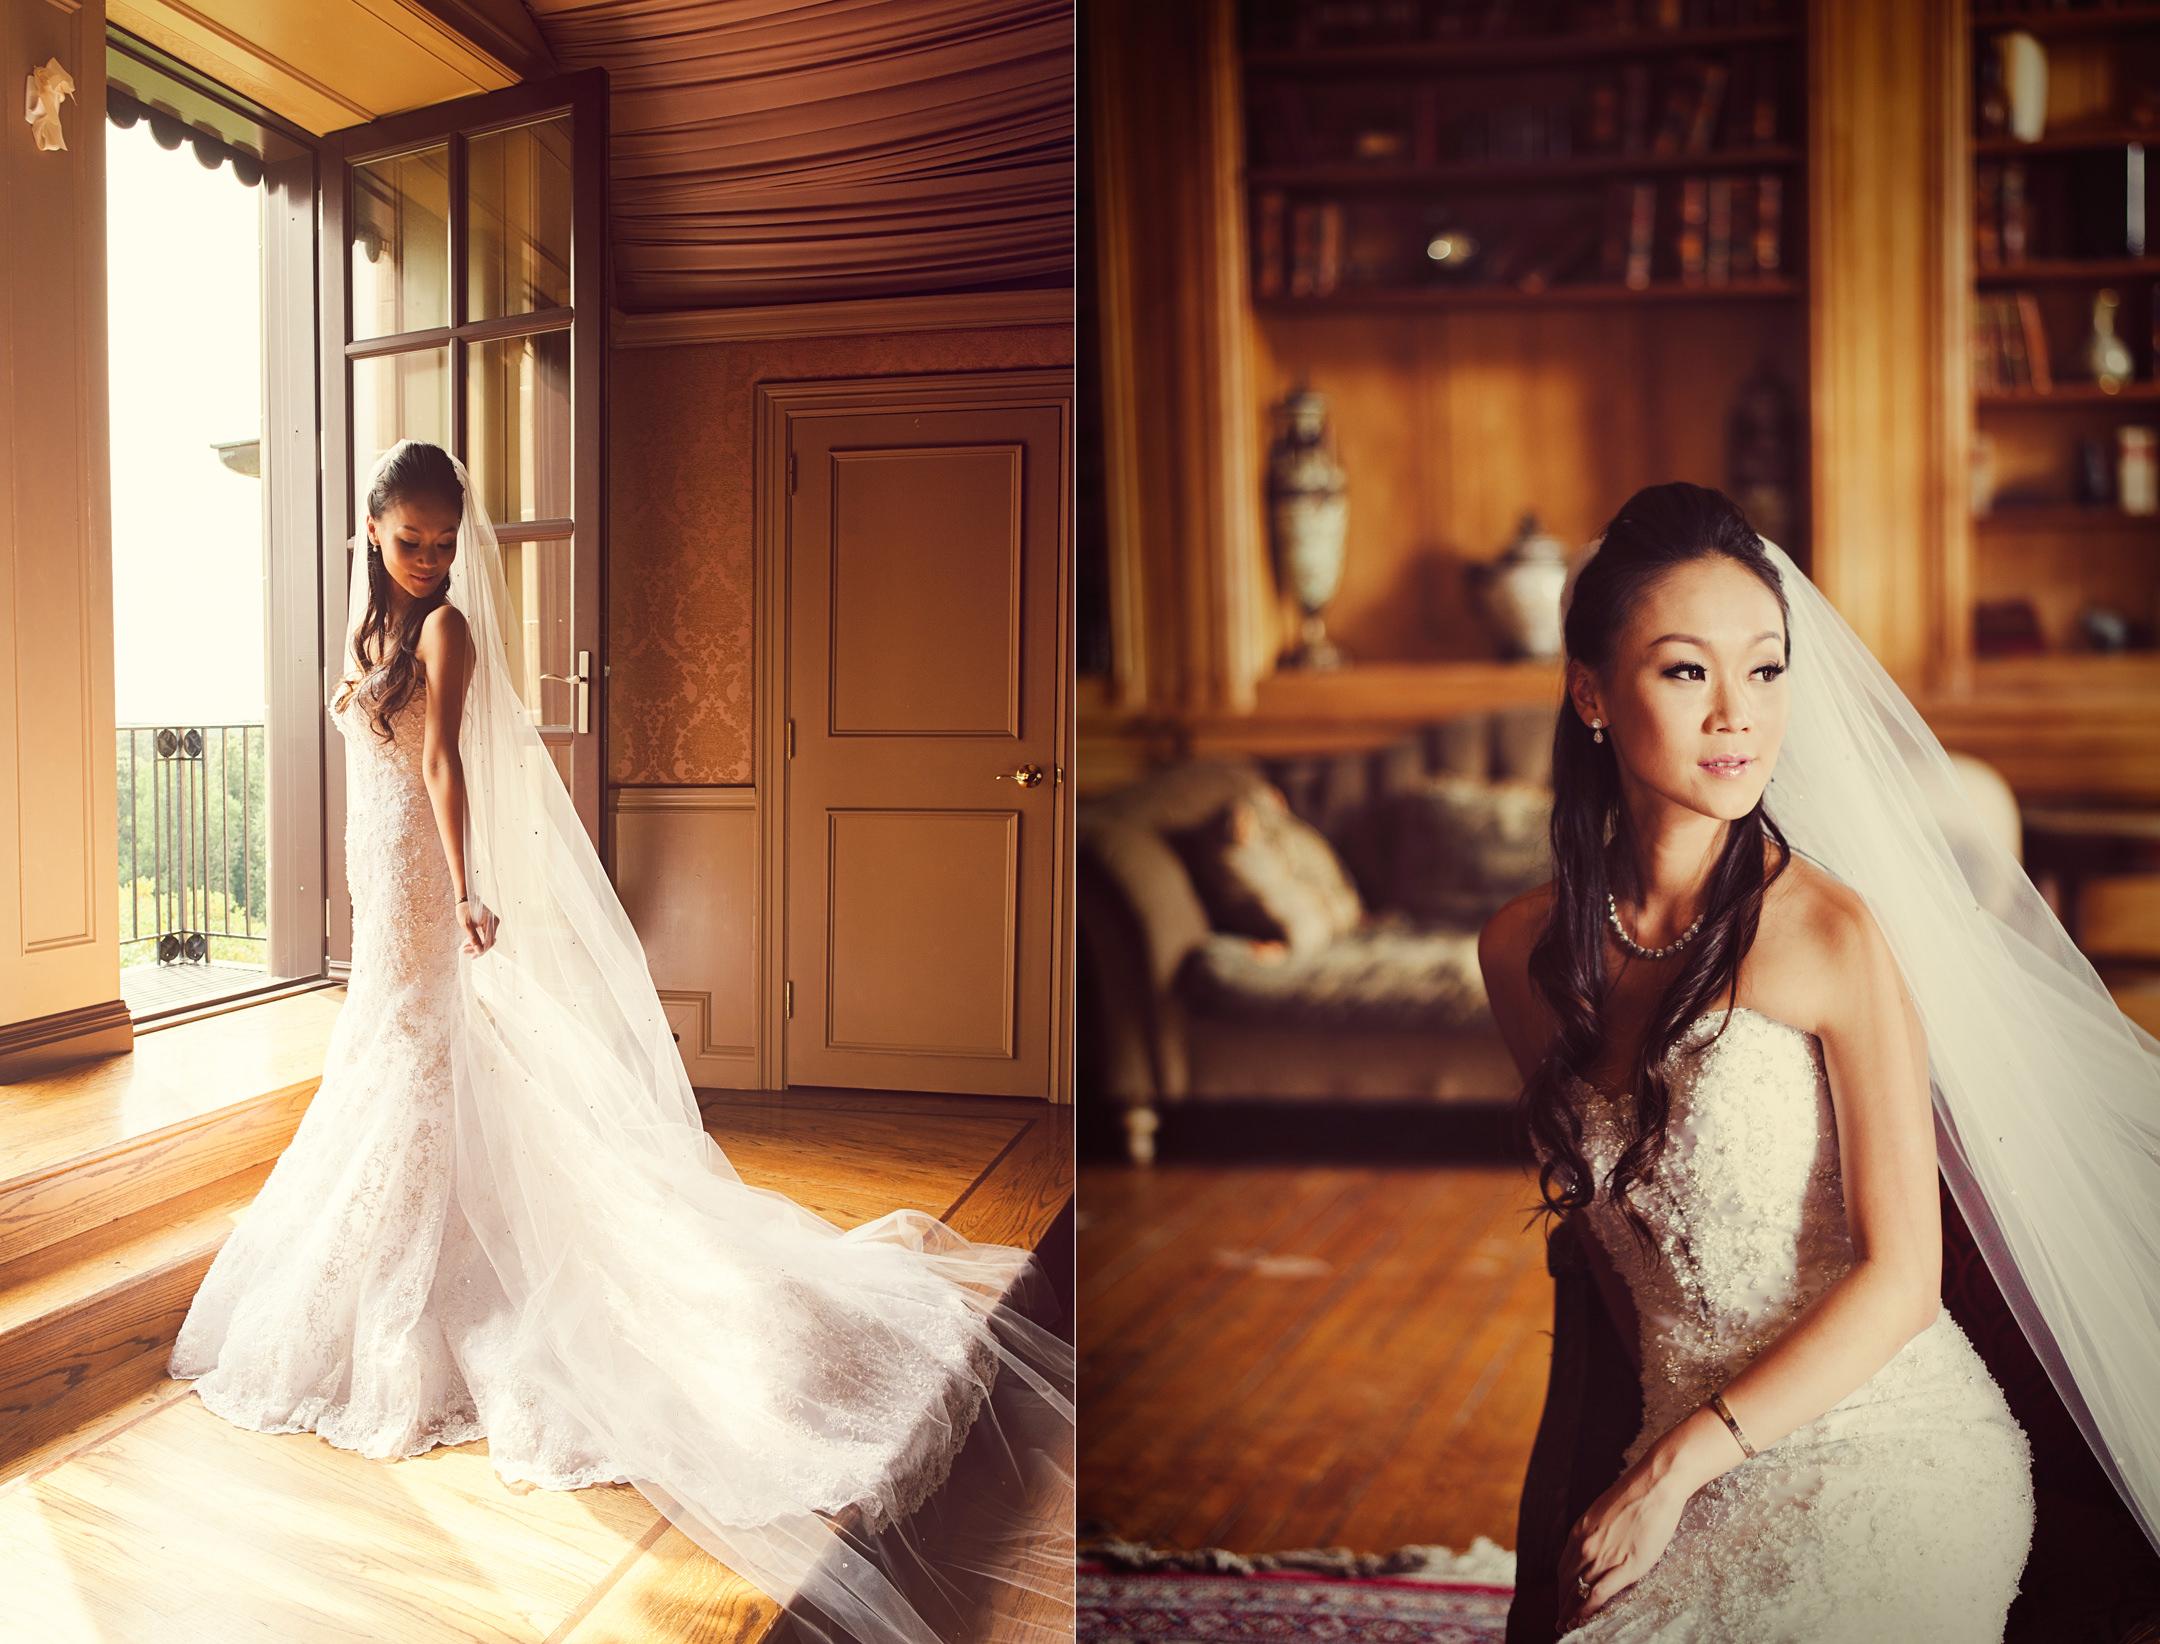 Chris_Hui_婚禮_婚紗照_pre_wedding_photography_best_043_.jpg